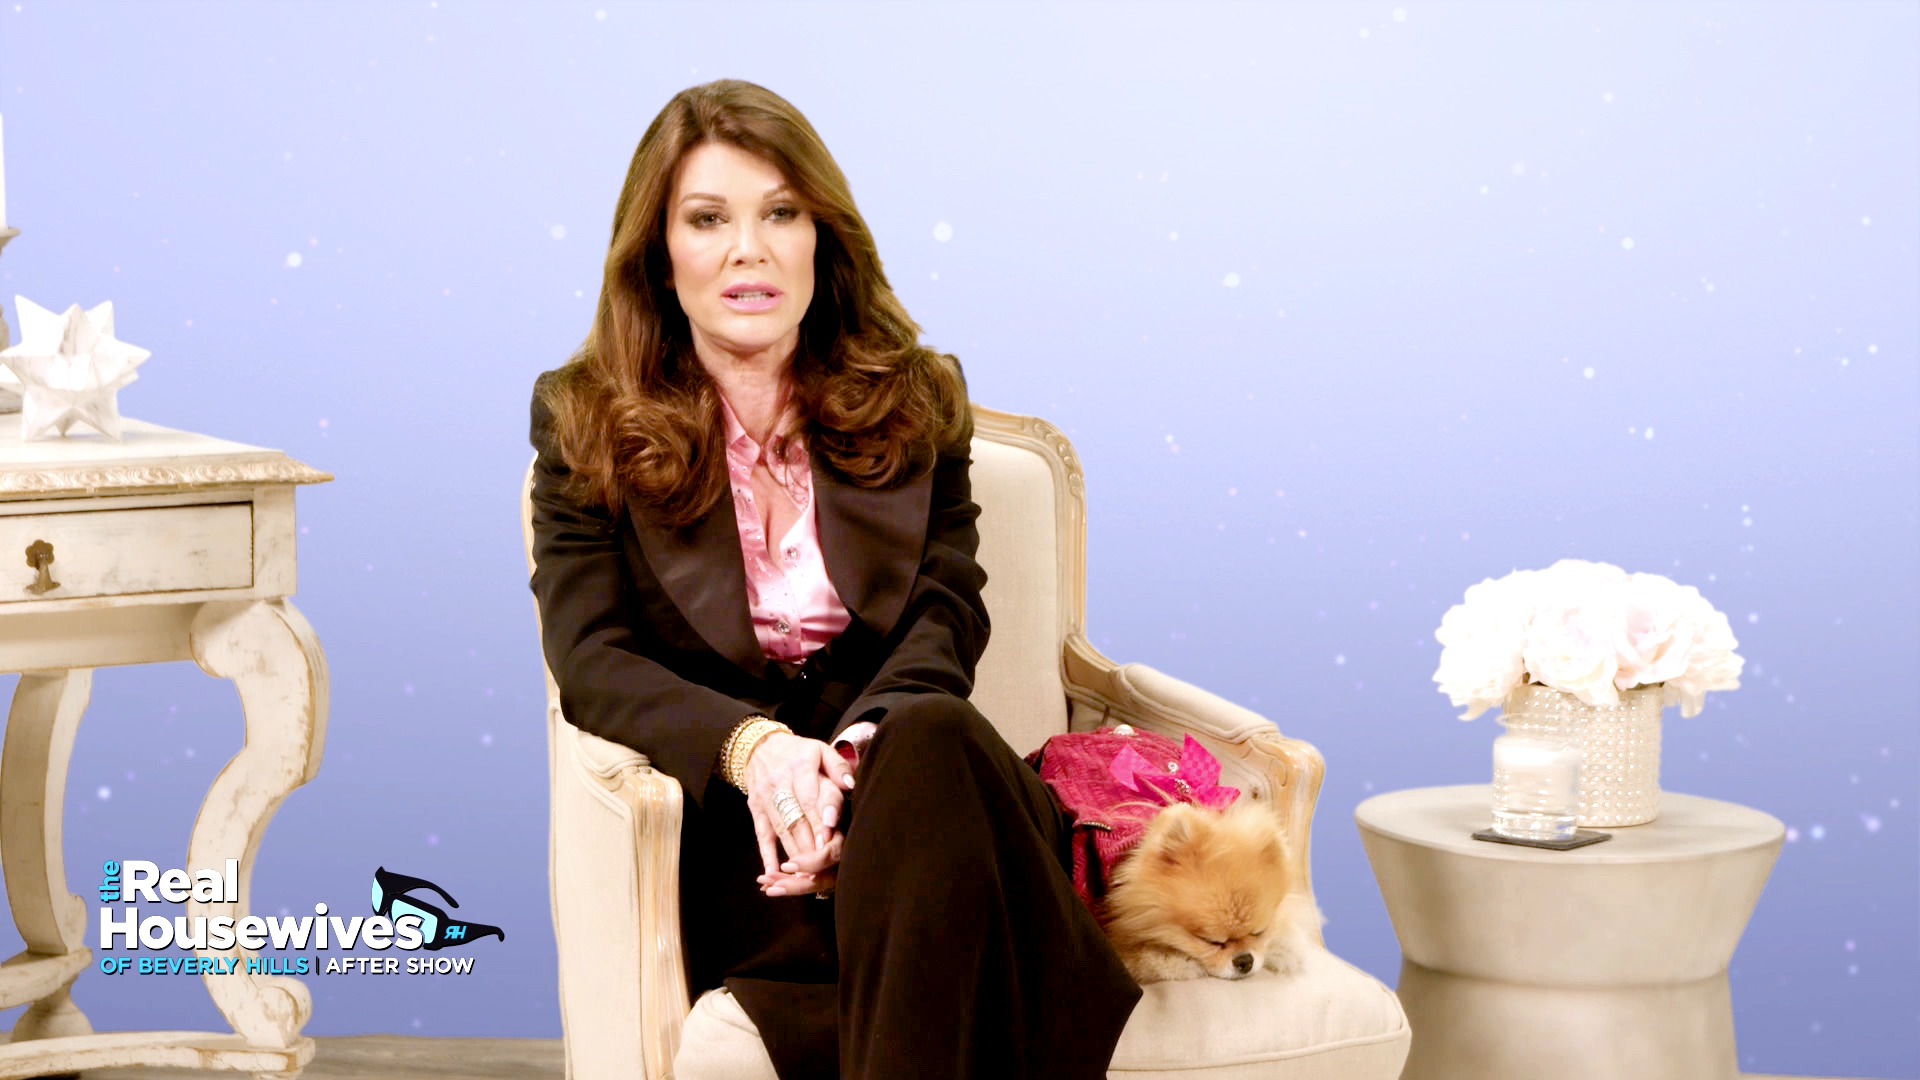 Does Lisa Vanderpump Think There's Any Way to Repair Her Friendship With Kyle?